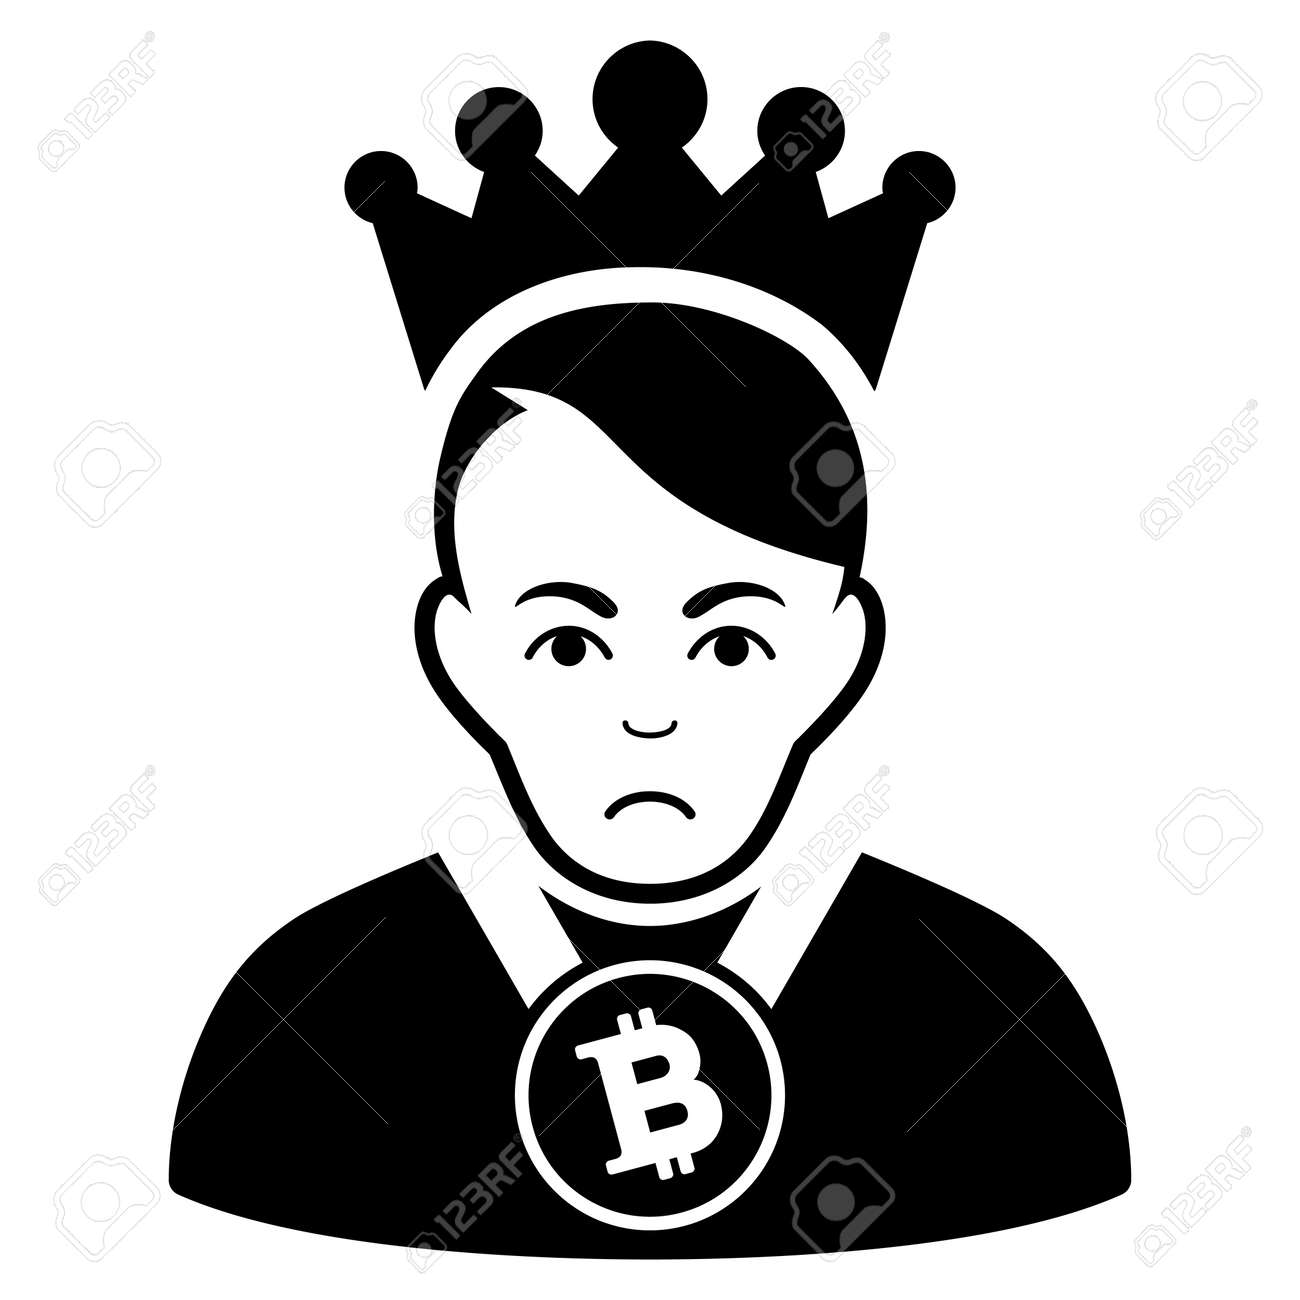 0a285673c28 Sad Bitcoin Lord vector icon. Style is flat graphic black symbol with  dolour sentiment.